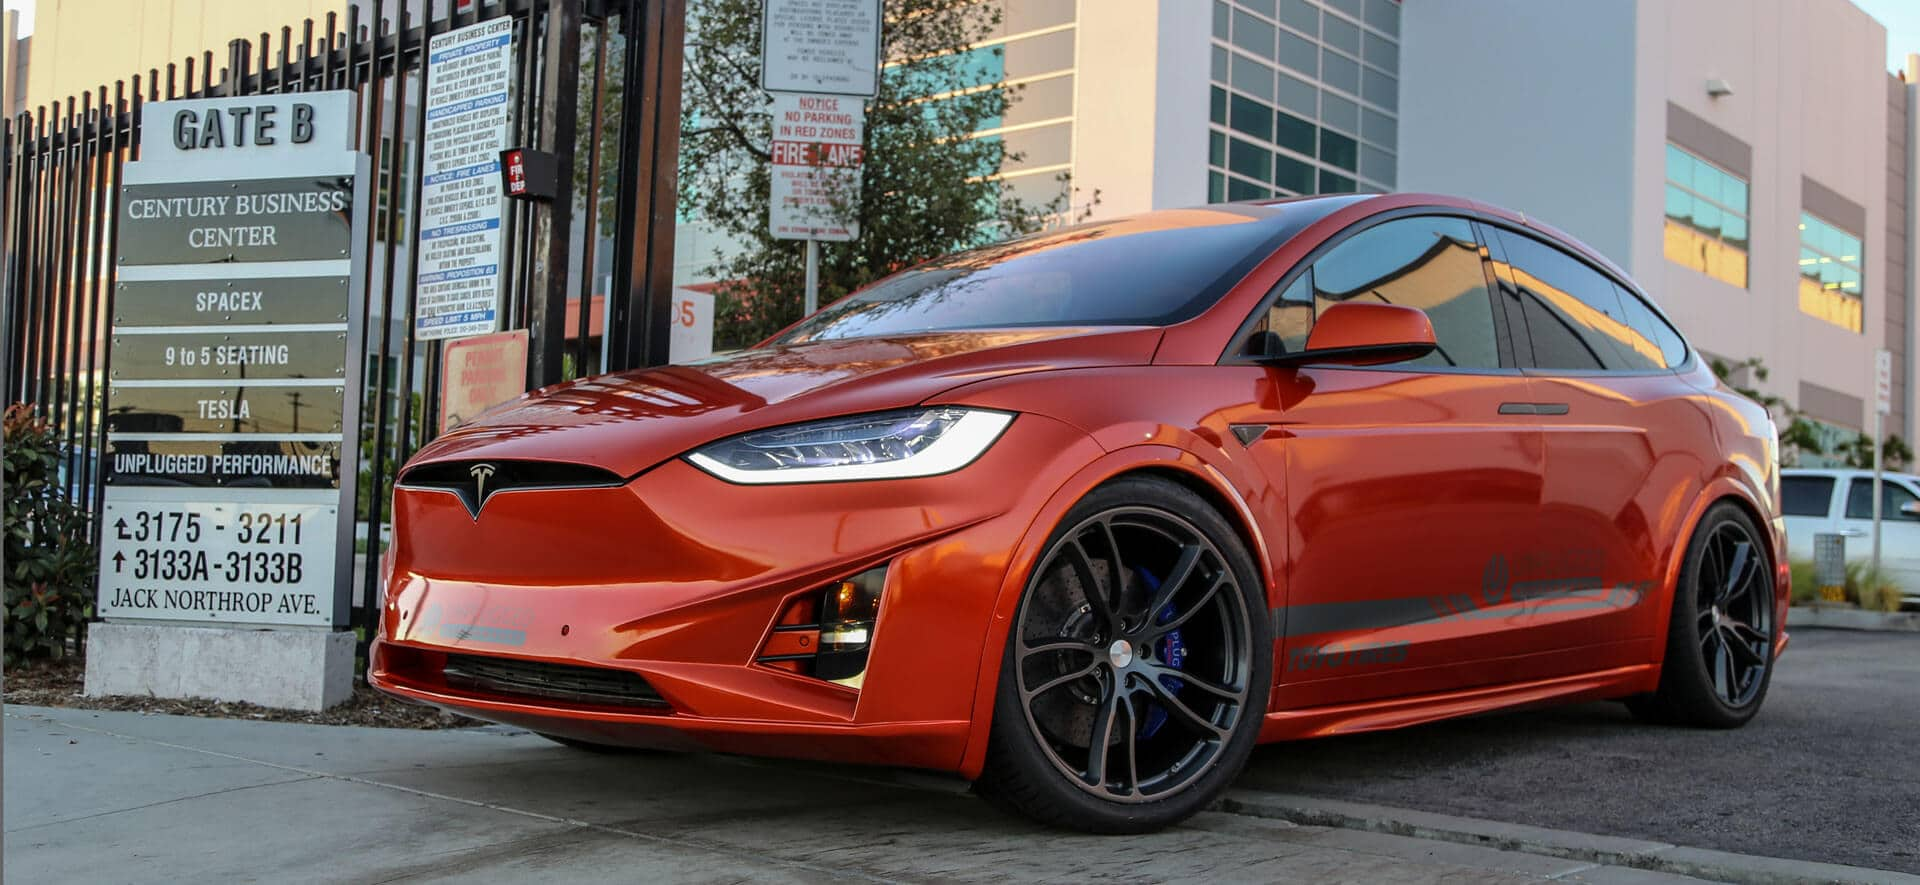 Performance Upgrades for Tesla Model X by Unplugged Performance